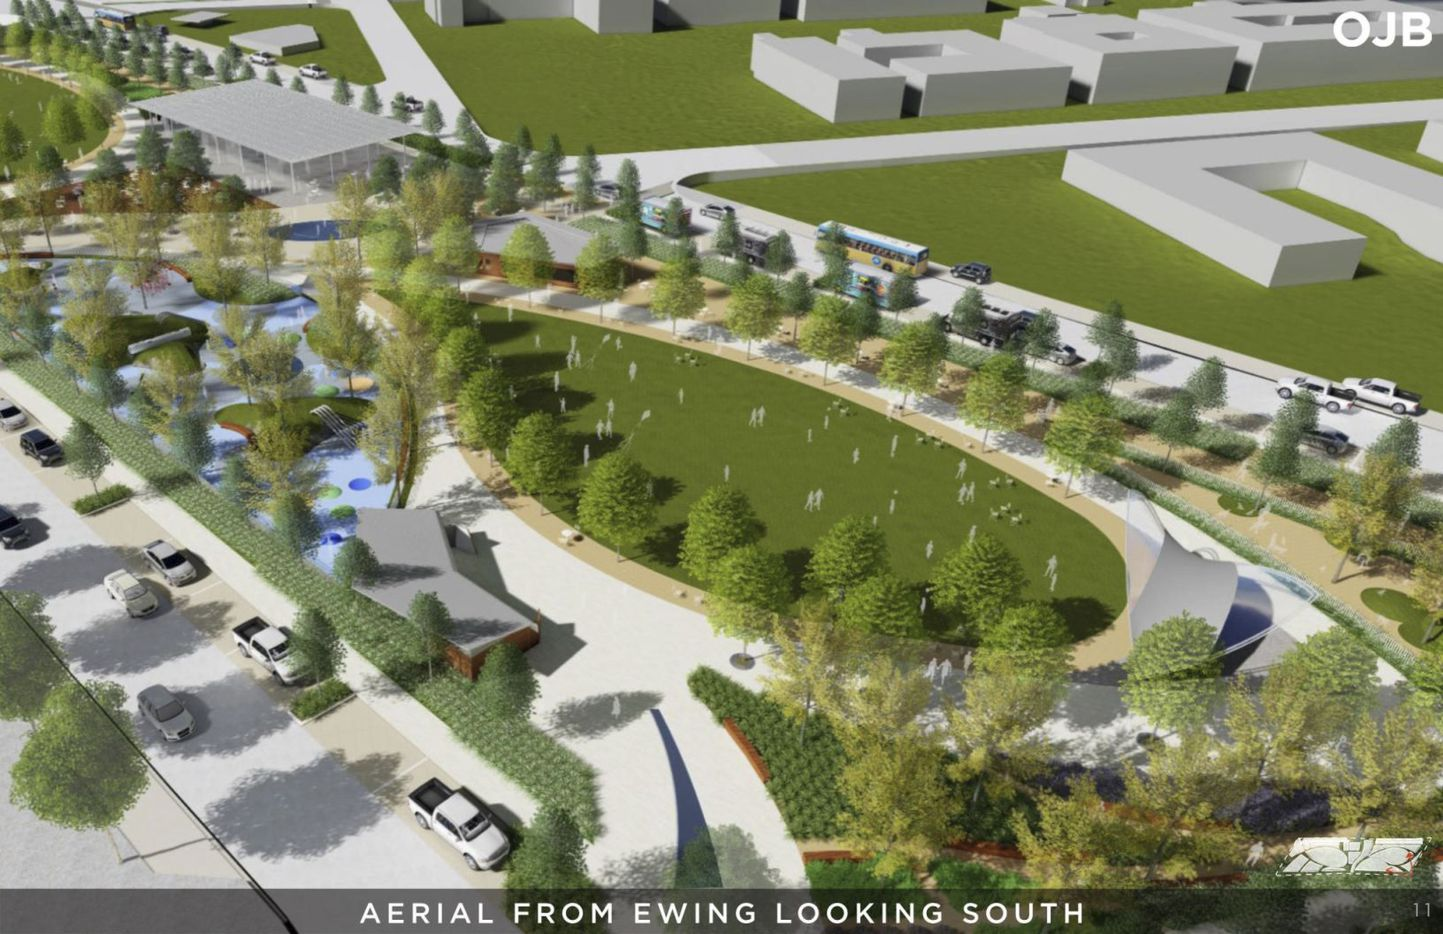 An aerial view from Ewing looking south, in a rendering from a Conceptual Plan for the Southern Gateway Public Green, a deck park over I-35E from S. Marsalis Avenue to S. Ewing Avenue, adjacent to the Dallas Zoo.